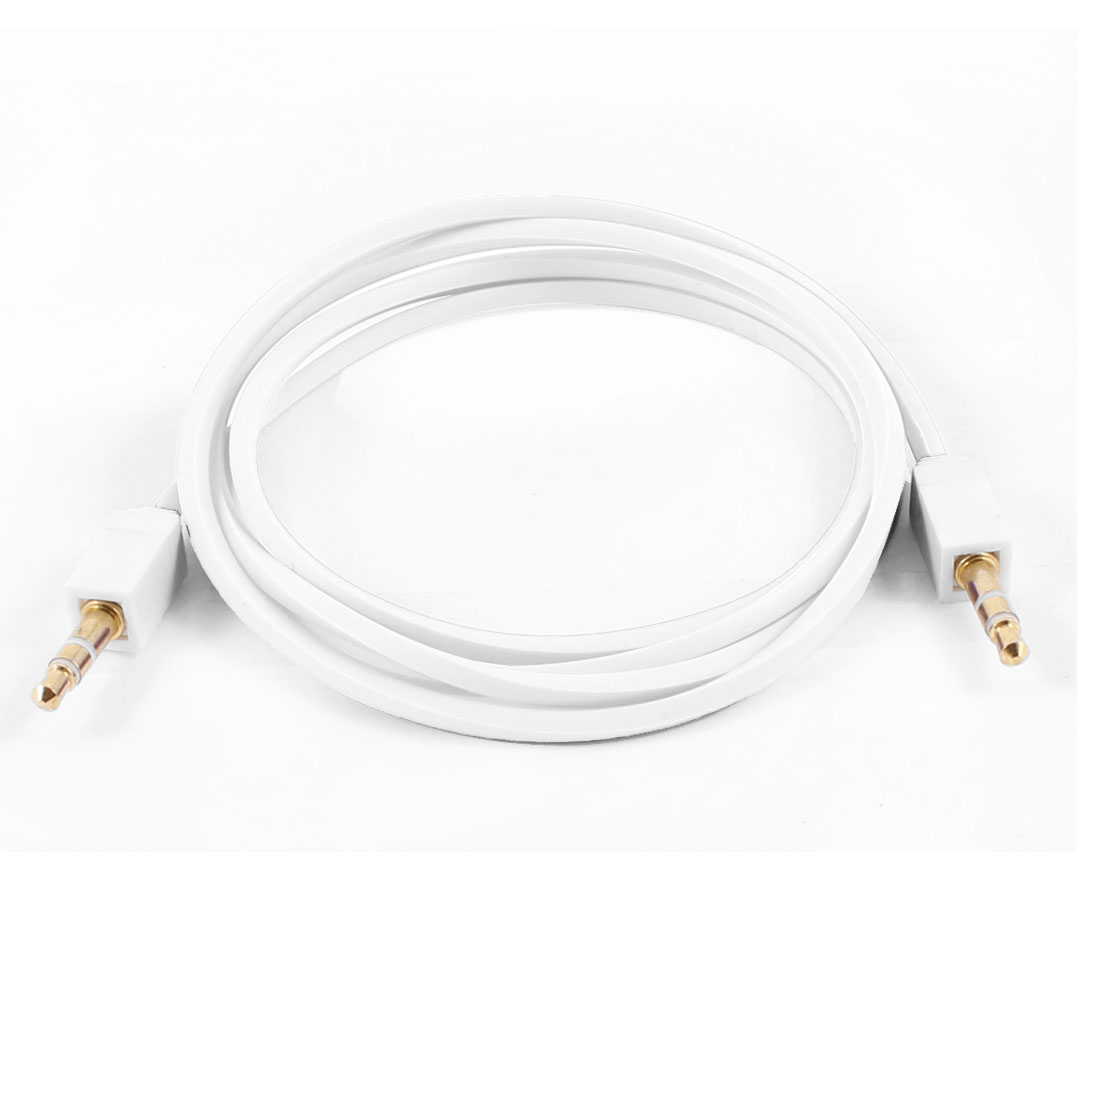 PC MP3 Adapter M/M 3.5mm to 3.5mm Square Audio Extension Cable 3.3ft White